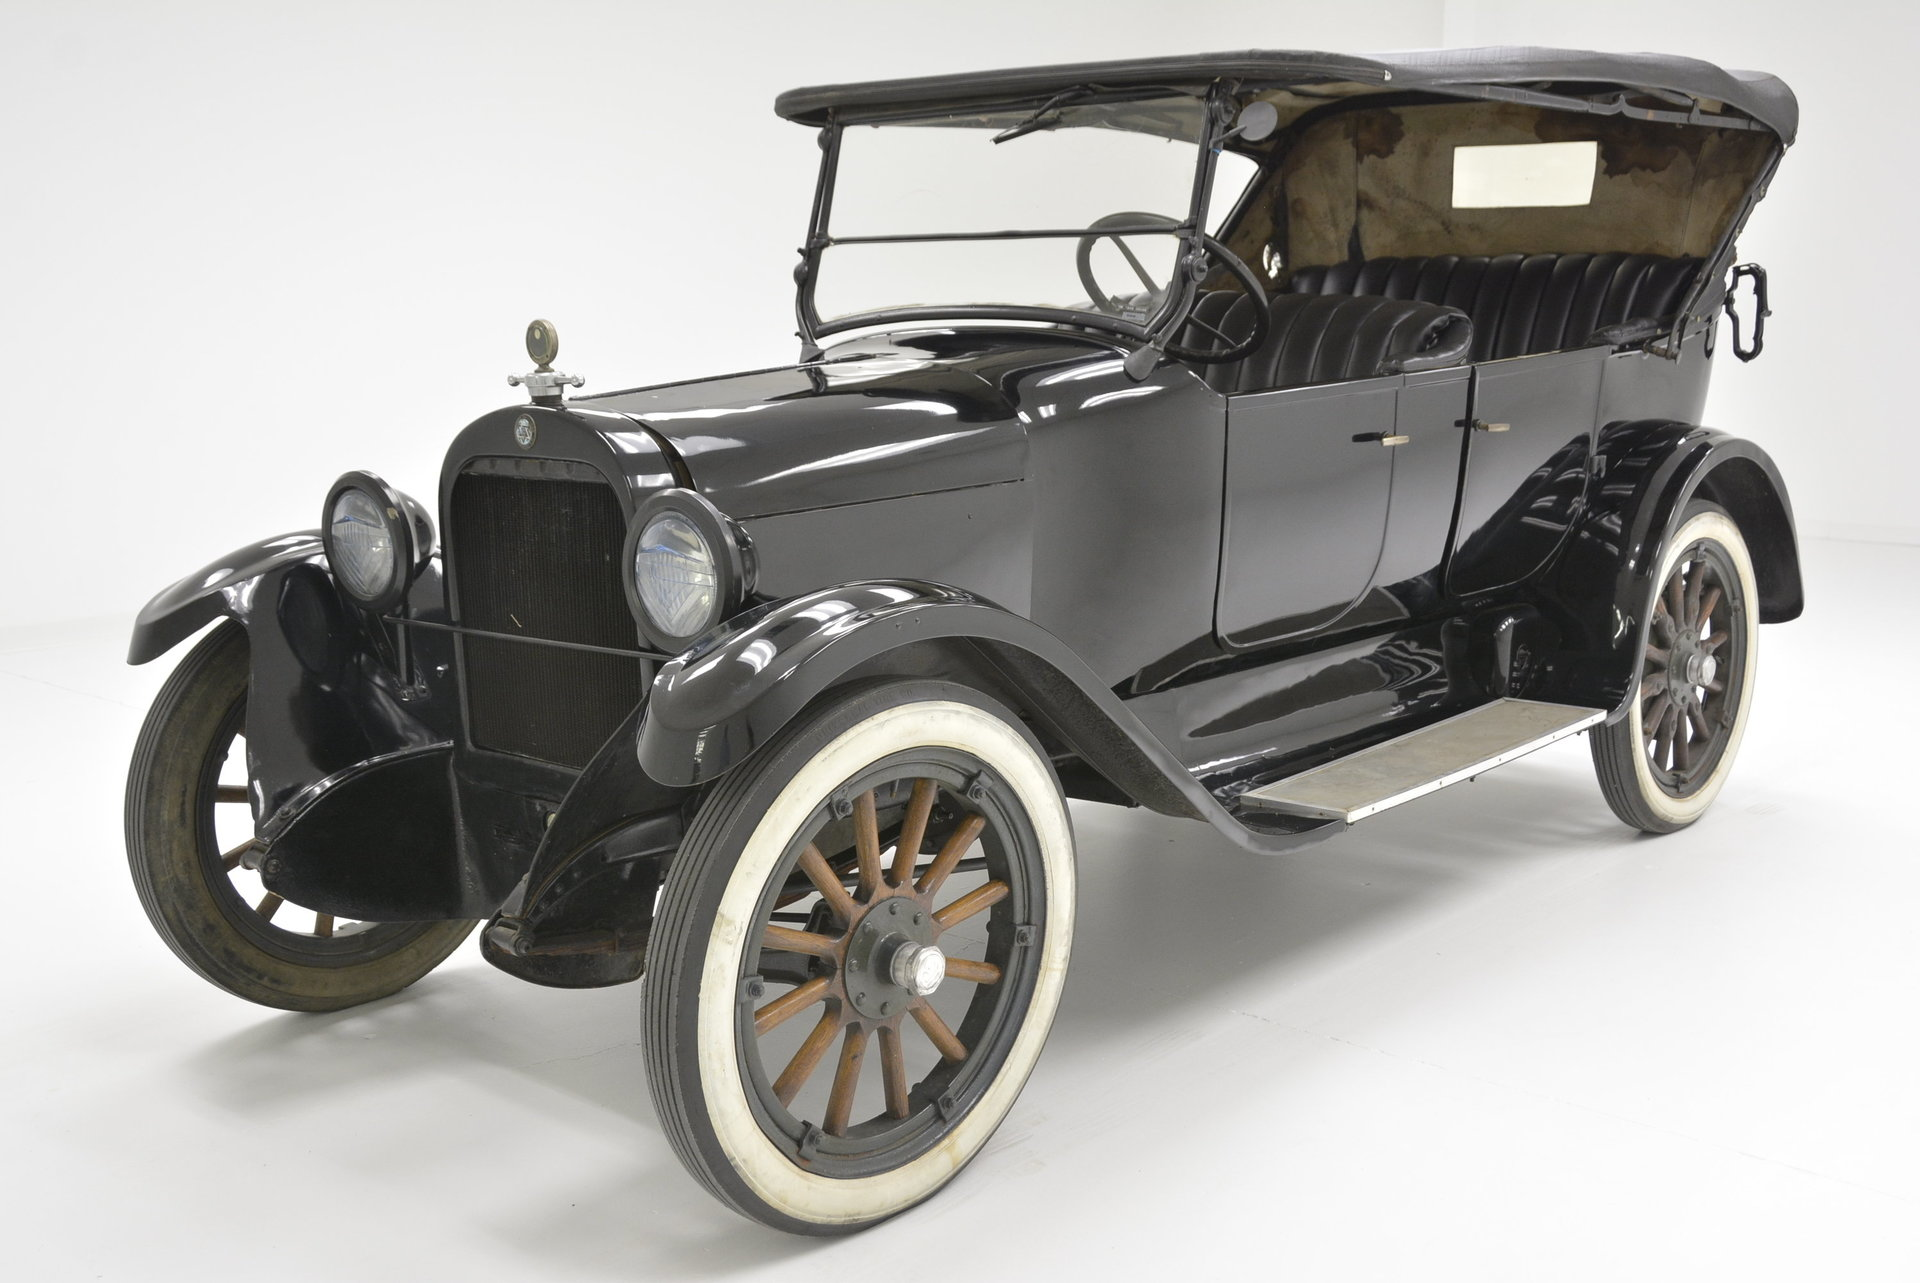 1927 Dodge Brothers Touring Sedan for sale in Waco, Texas ... |1929 Dodge Touring Car